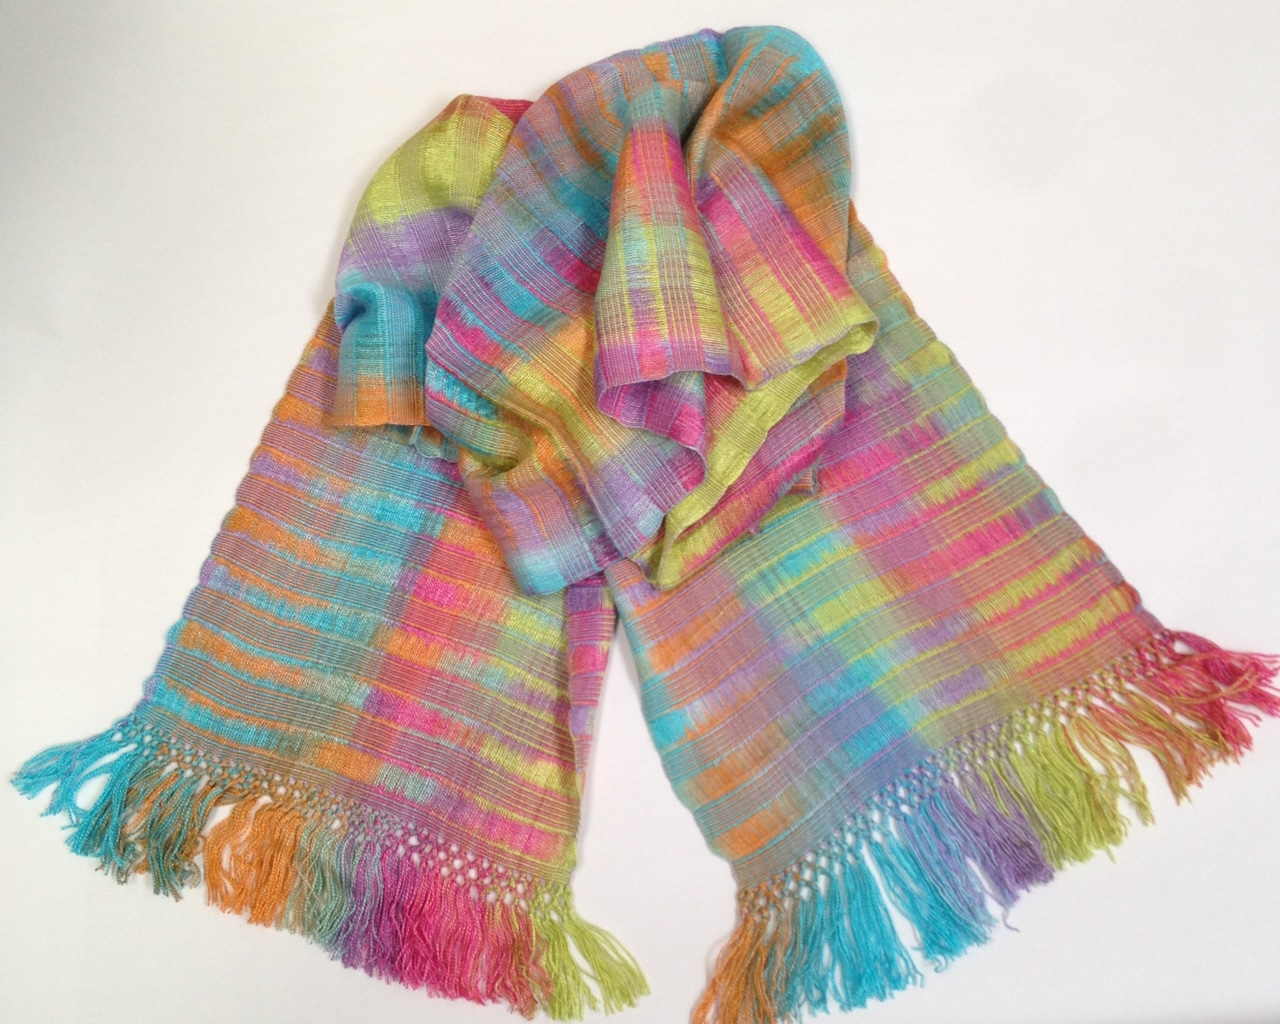 Brilliant Pastels - Lightweight Bamboo Open-Weave Handwoven Scarf 8 x 68